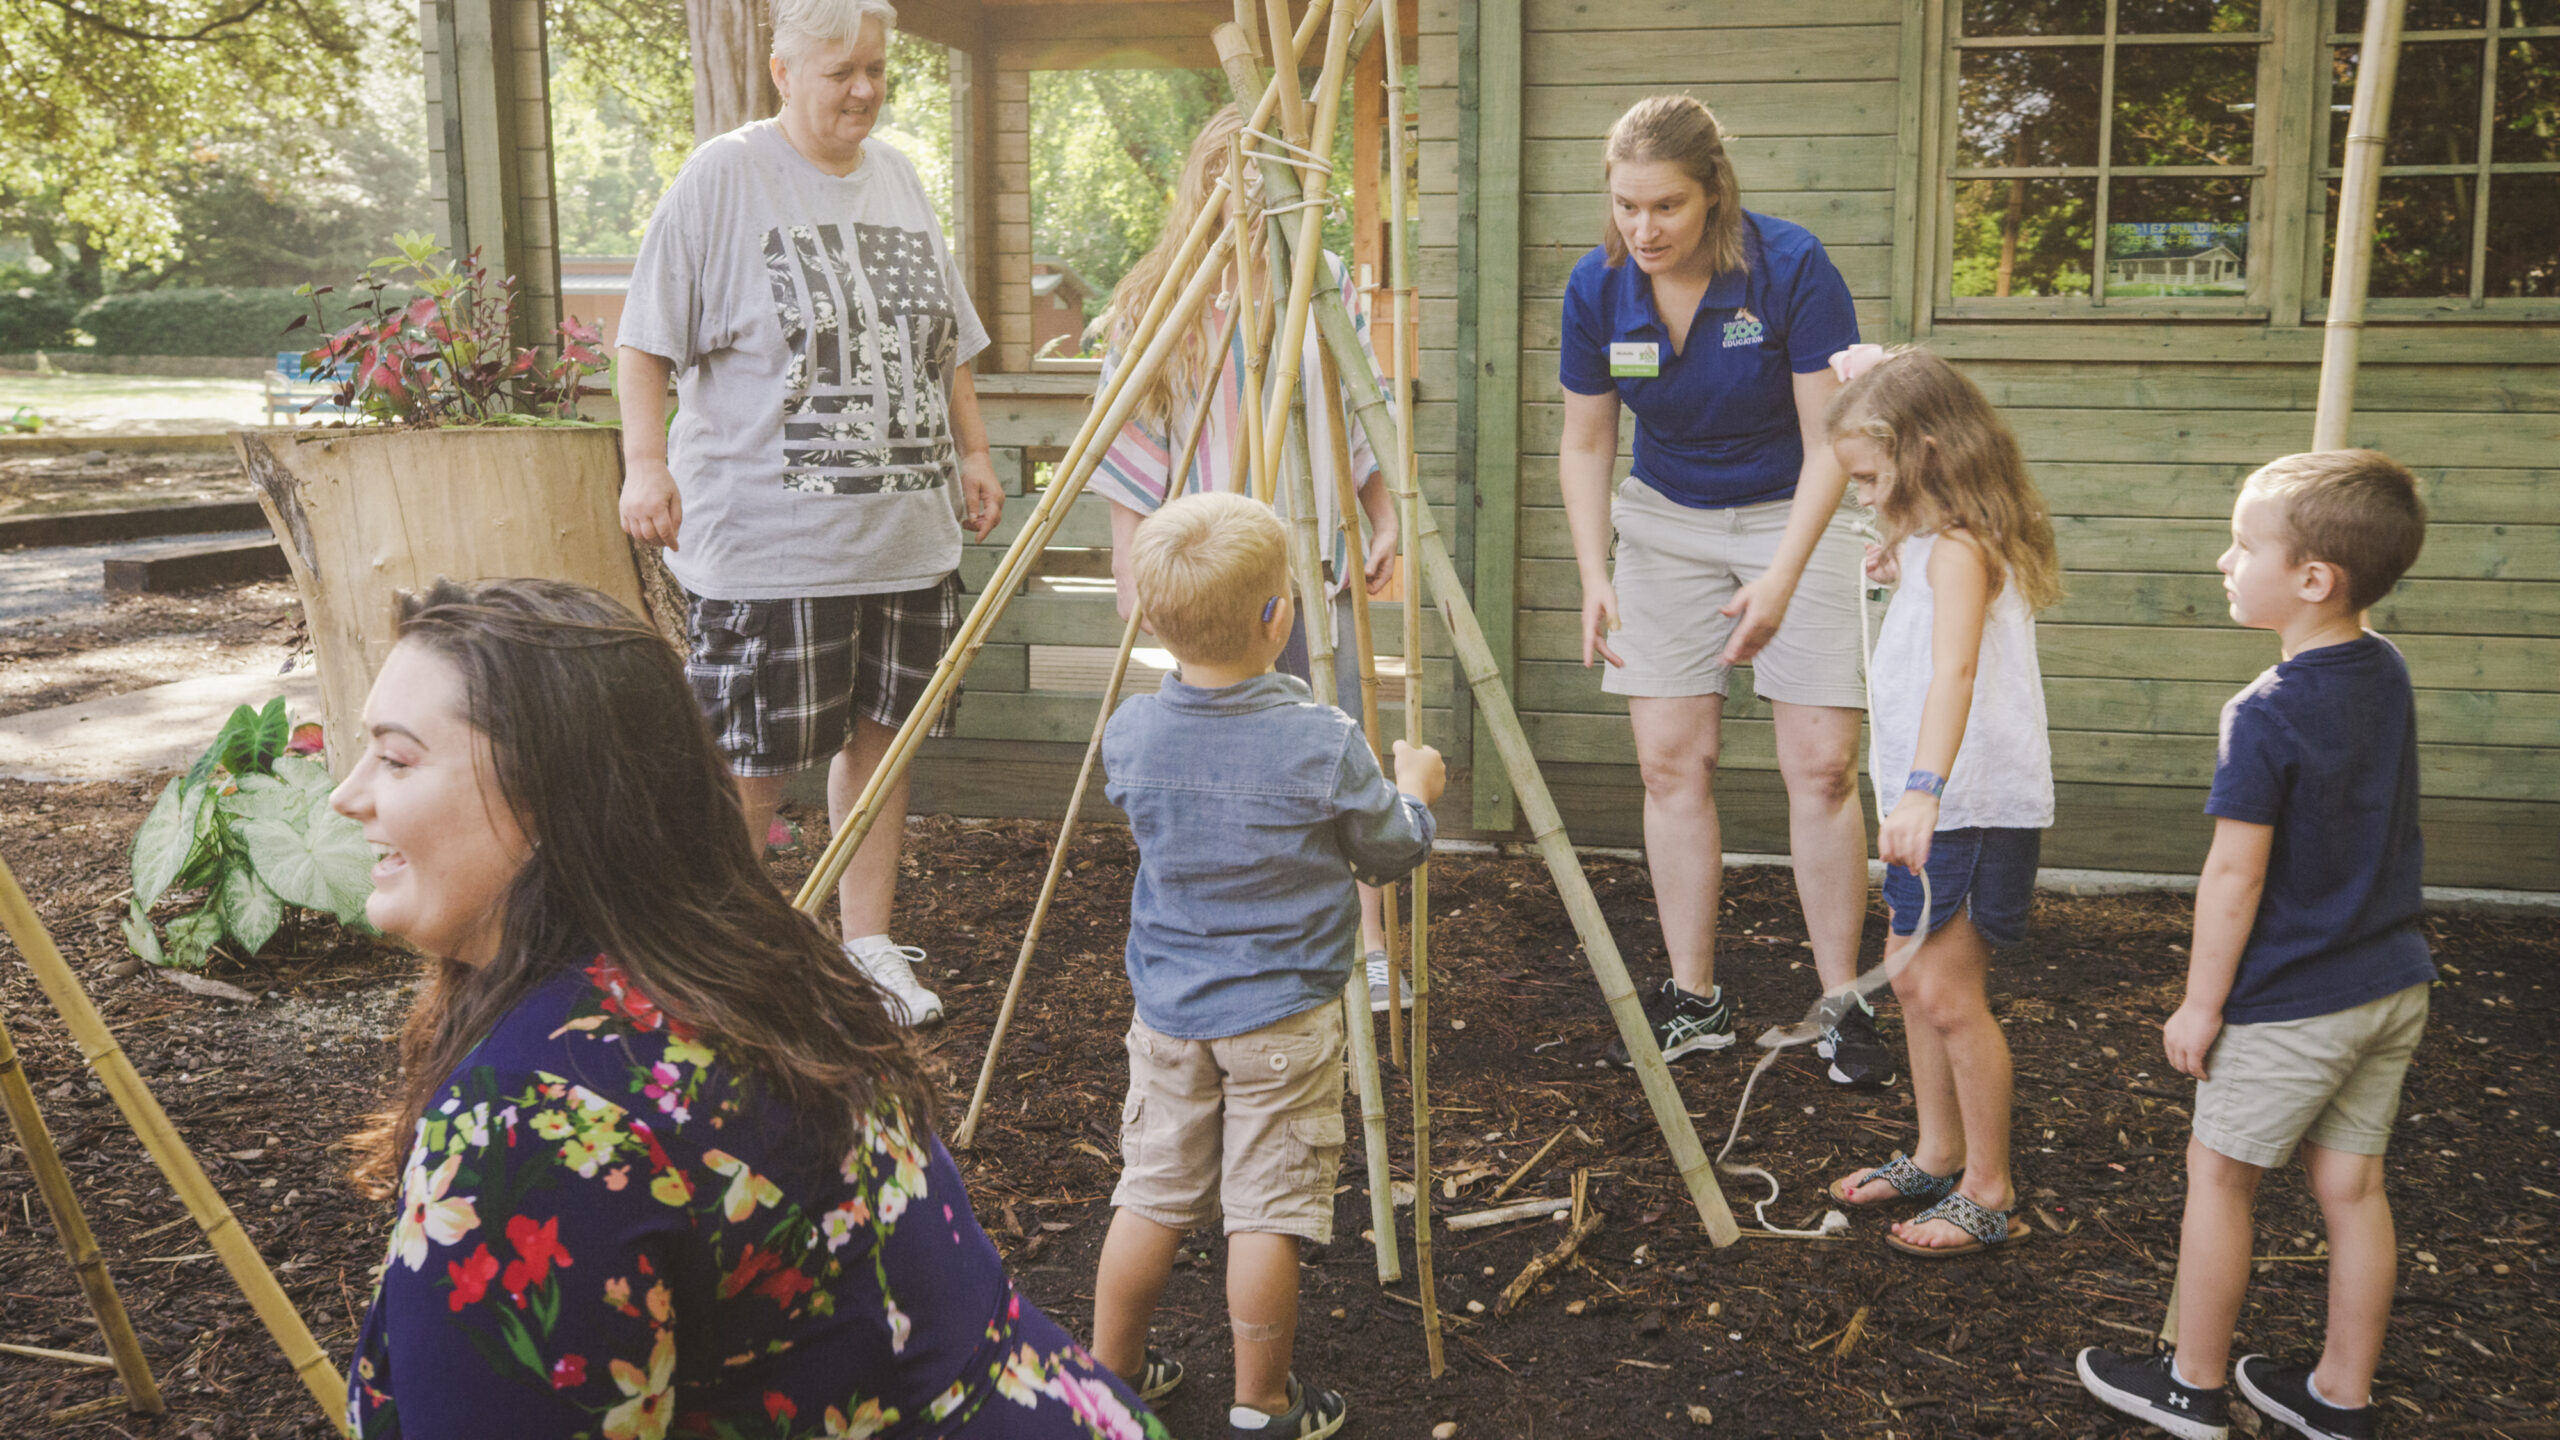 Children and adults gather to build a teepee